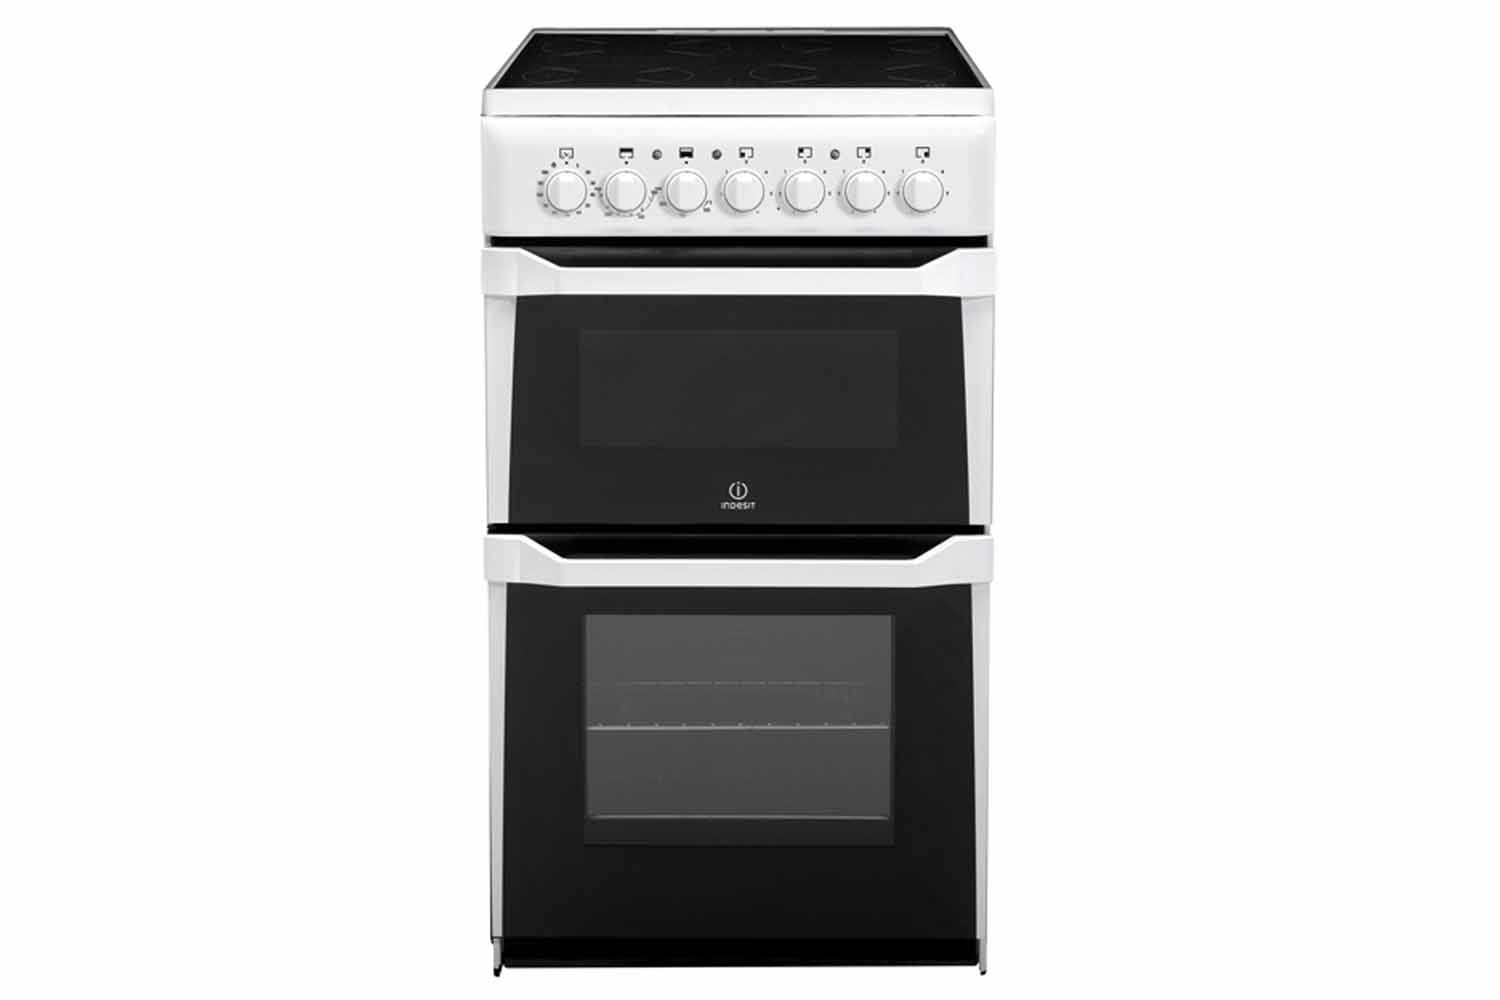 Indesit 50cm Electric Cooker | IT50CW